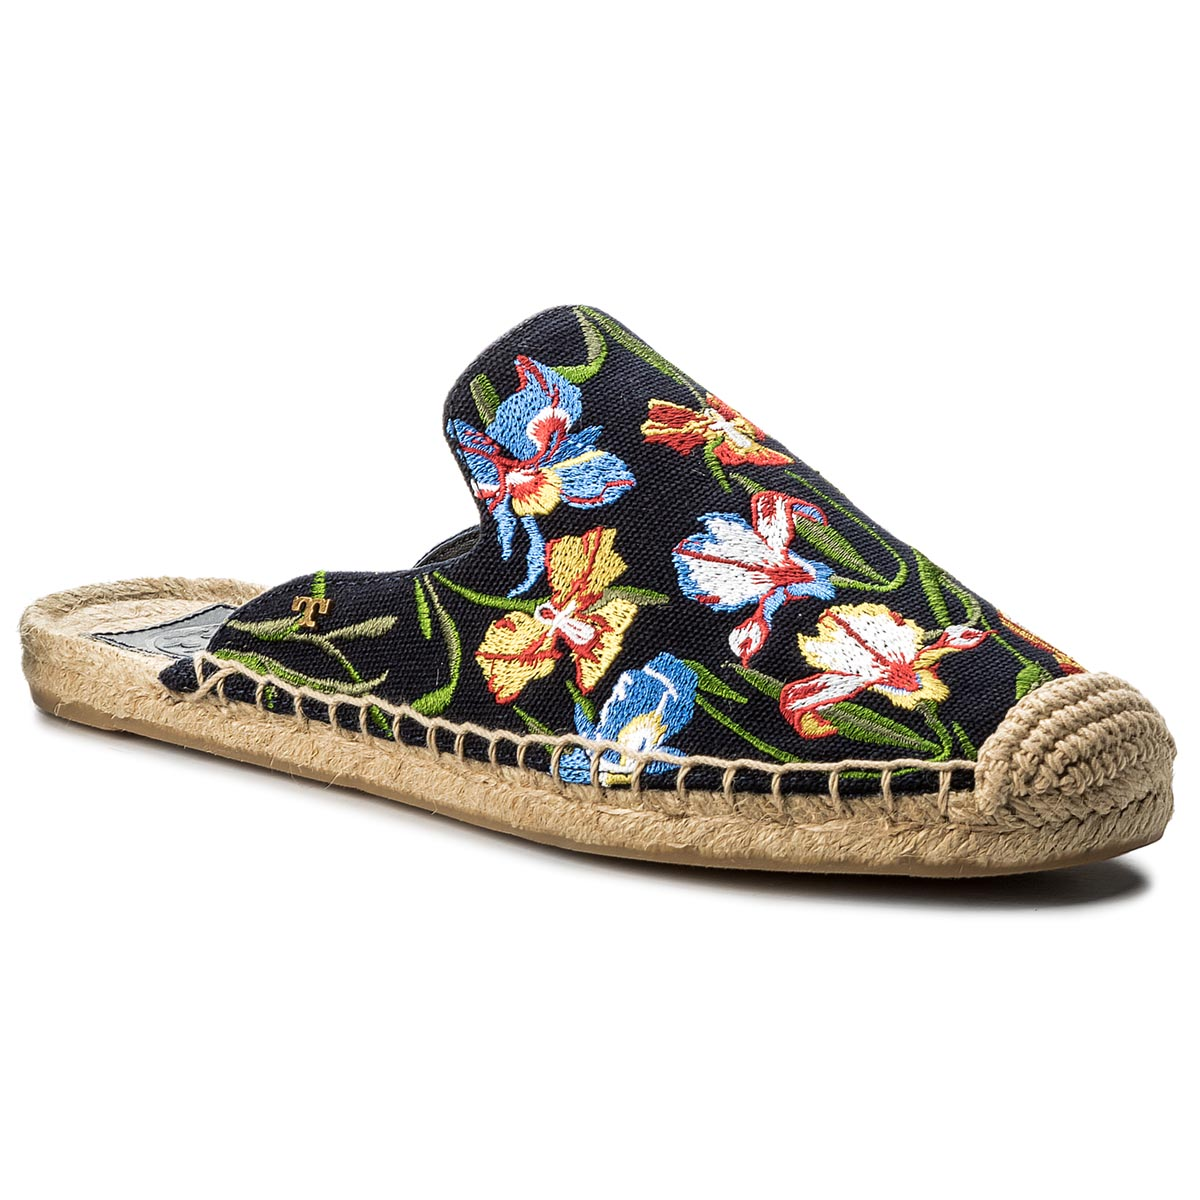 Espadrile TORY BURCH - Max Embrioidered Espadrille Slide 46913 Perfect Nany/Painted Iris 449